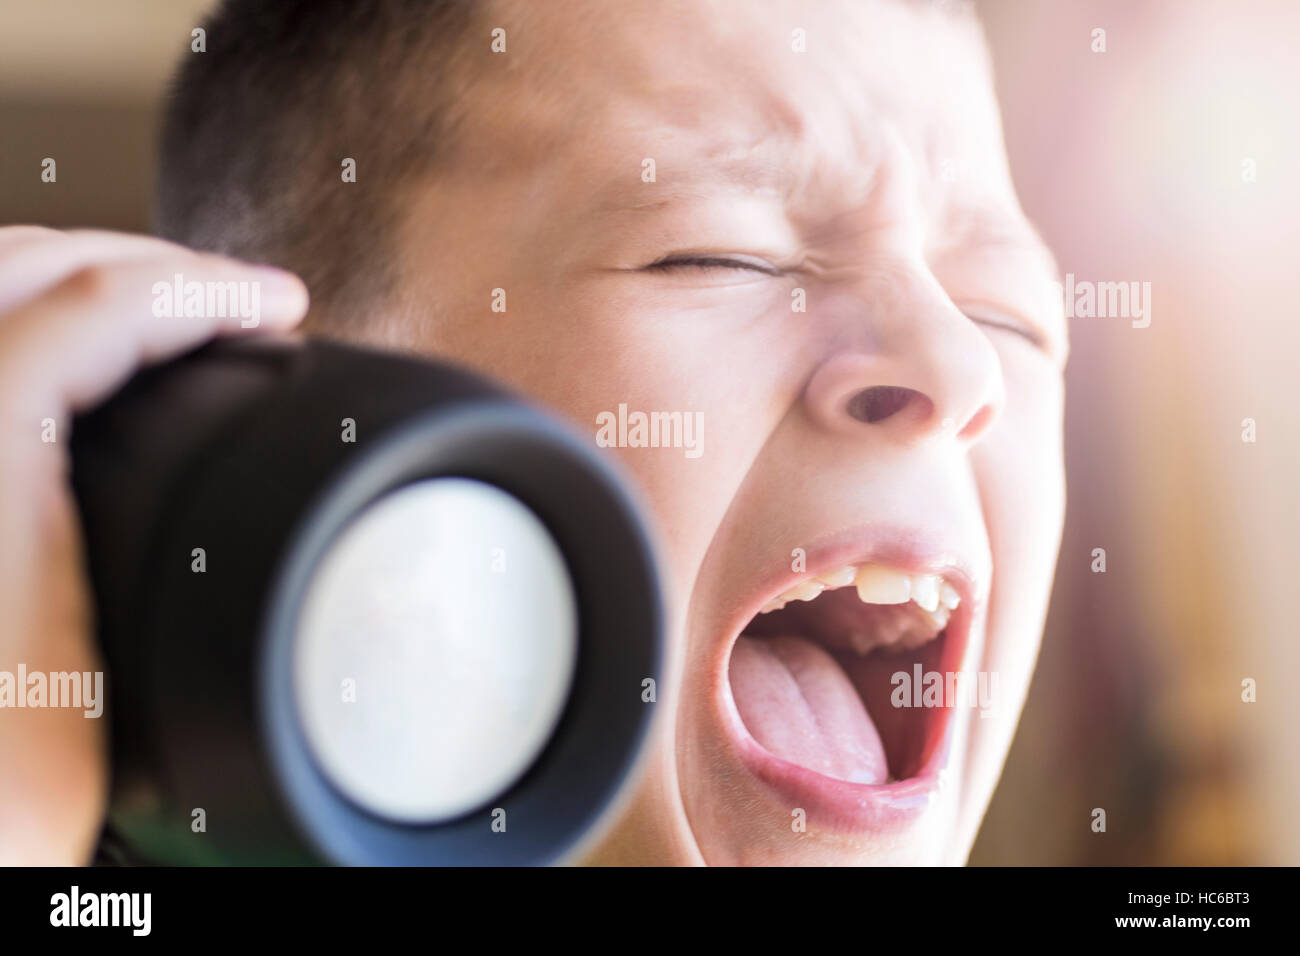 Young Boy Singing Out Loud While Listening Music on Wireless Speaker. Expressive Face. - Stock Image